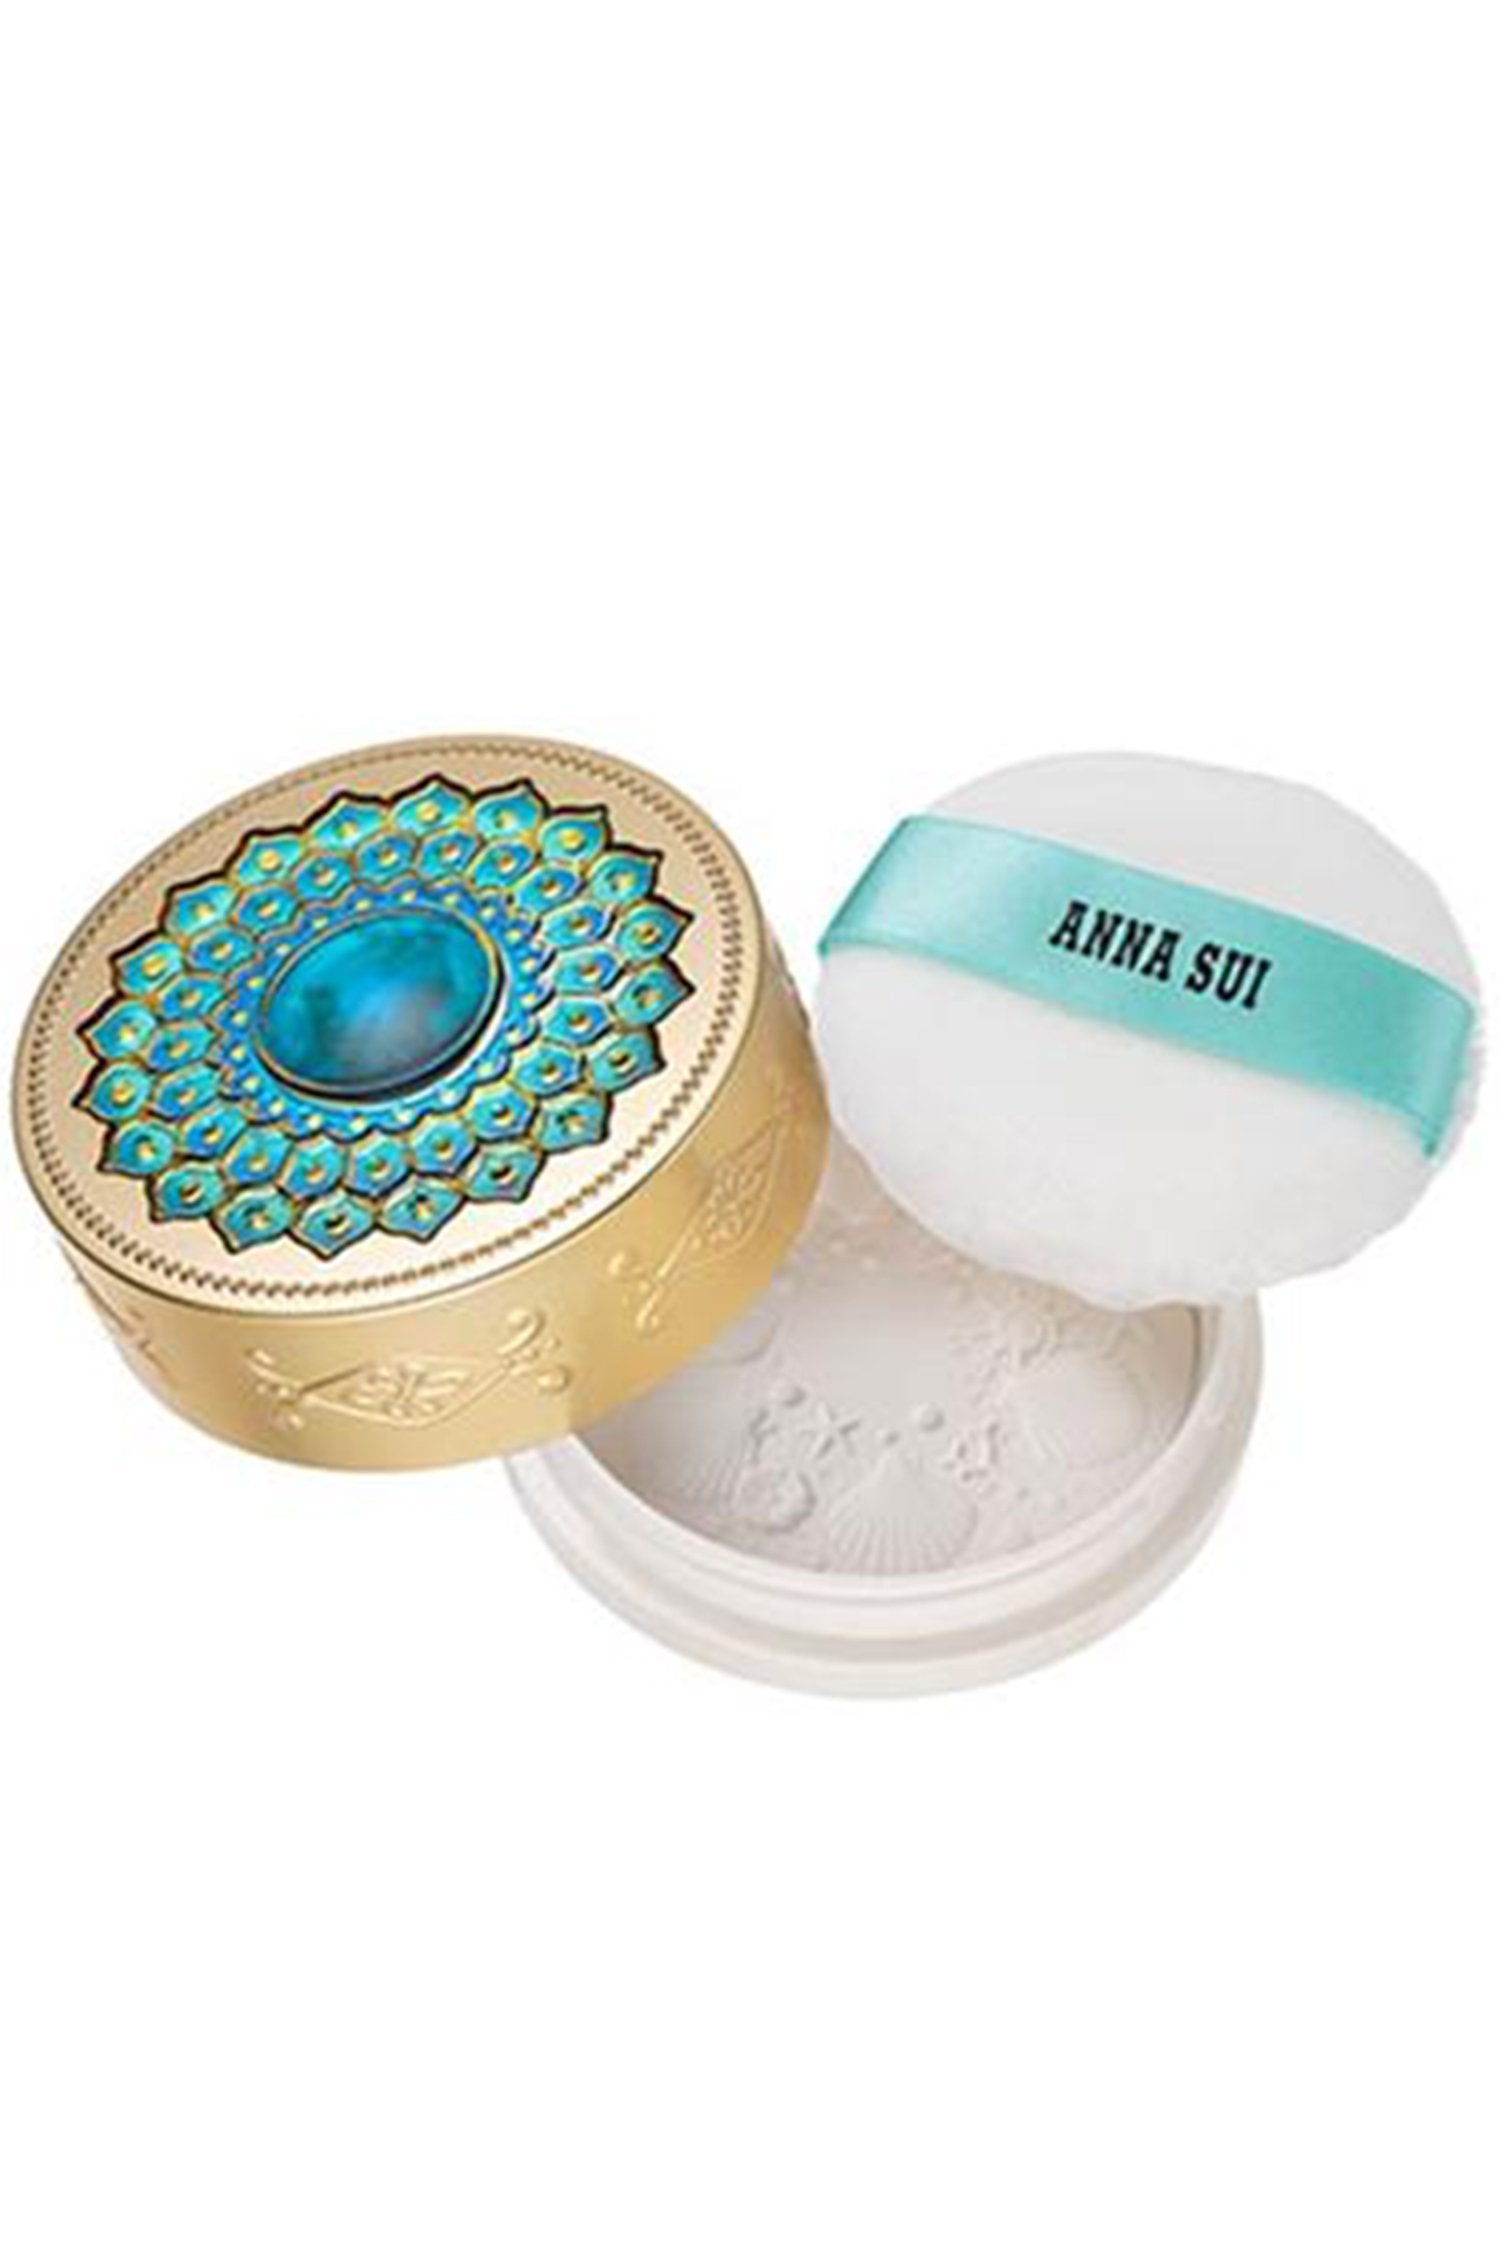 Brightening Face Powder Case (Large) - Anna Sui